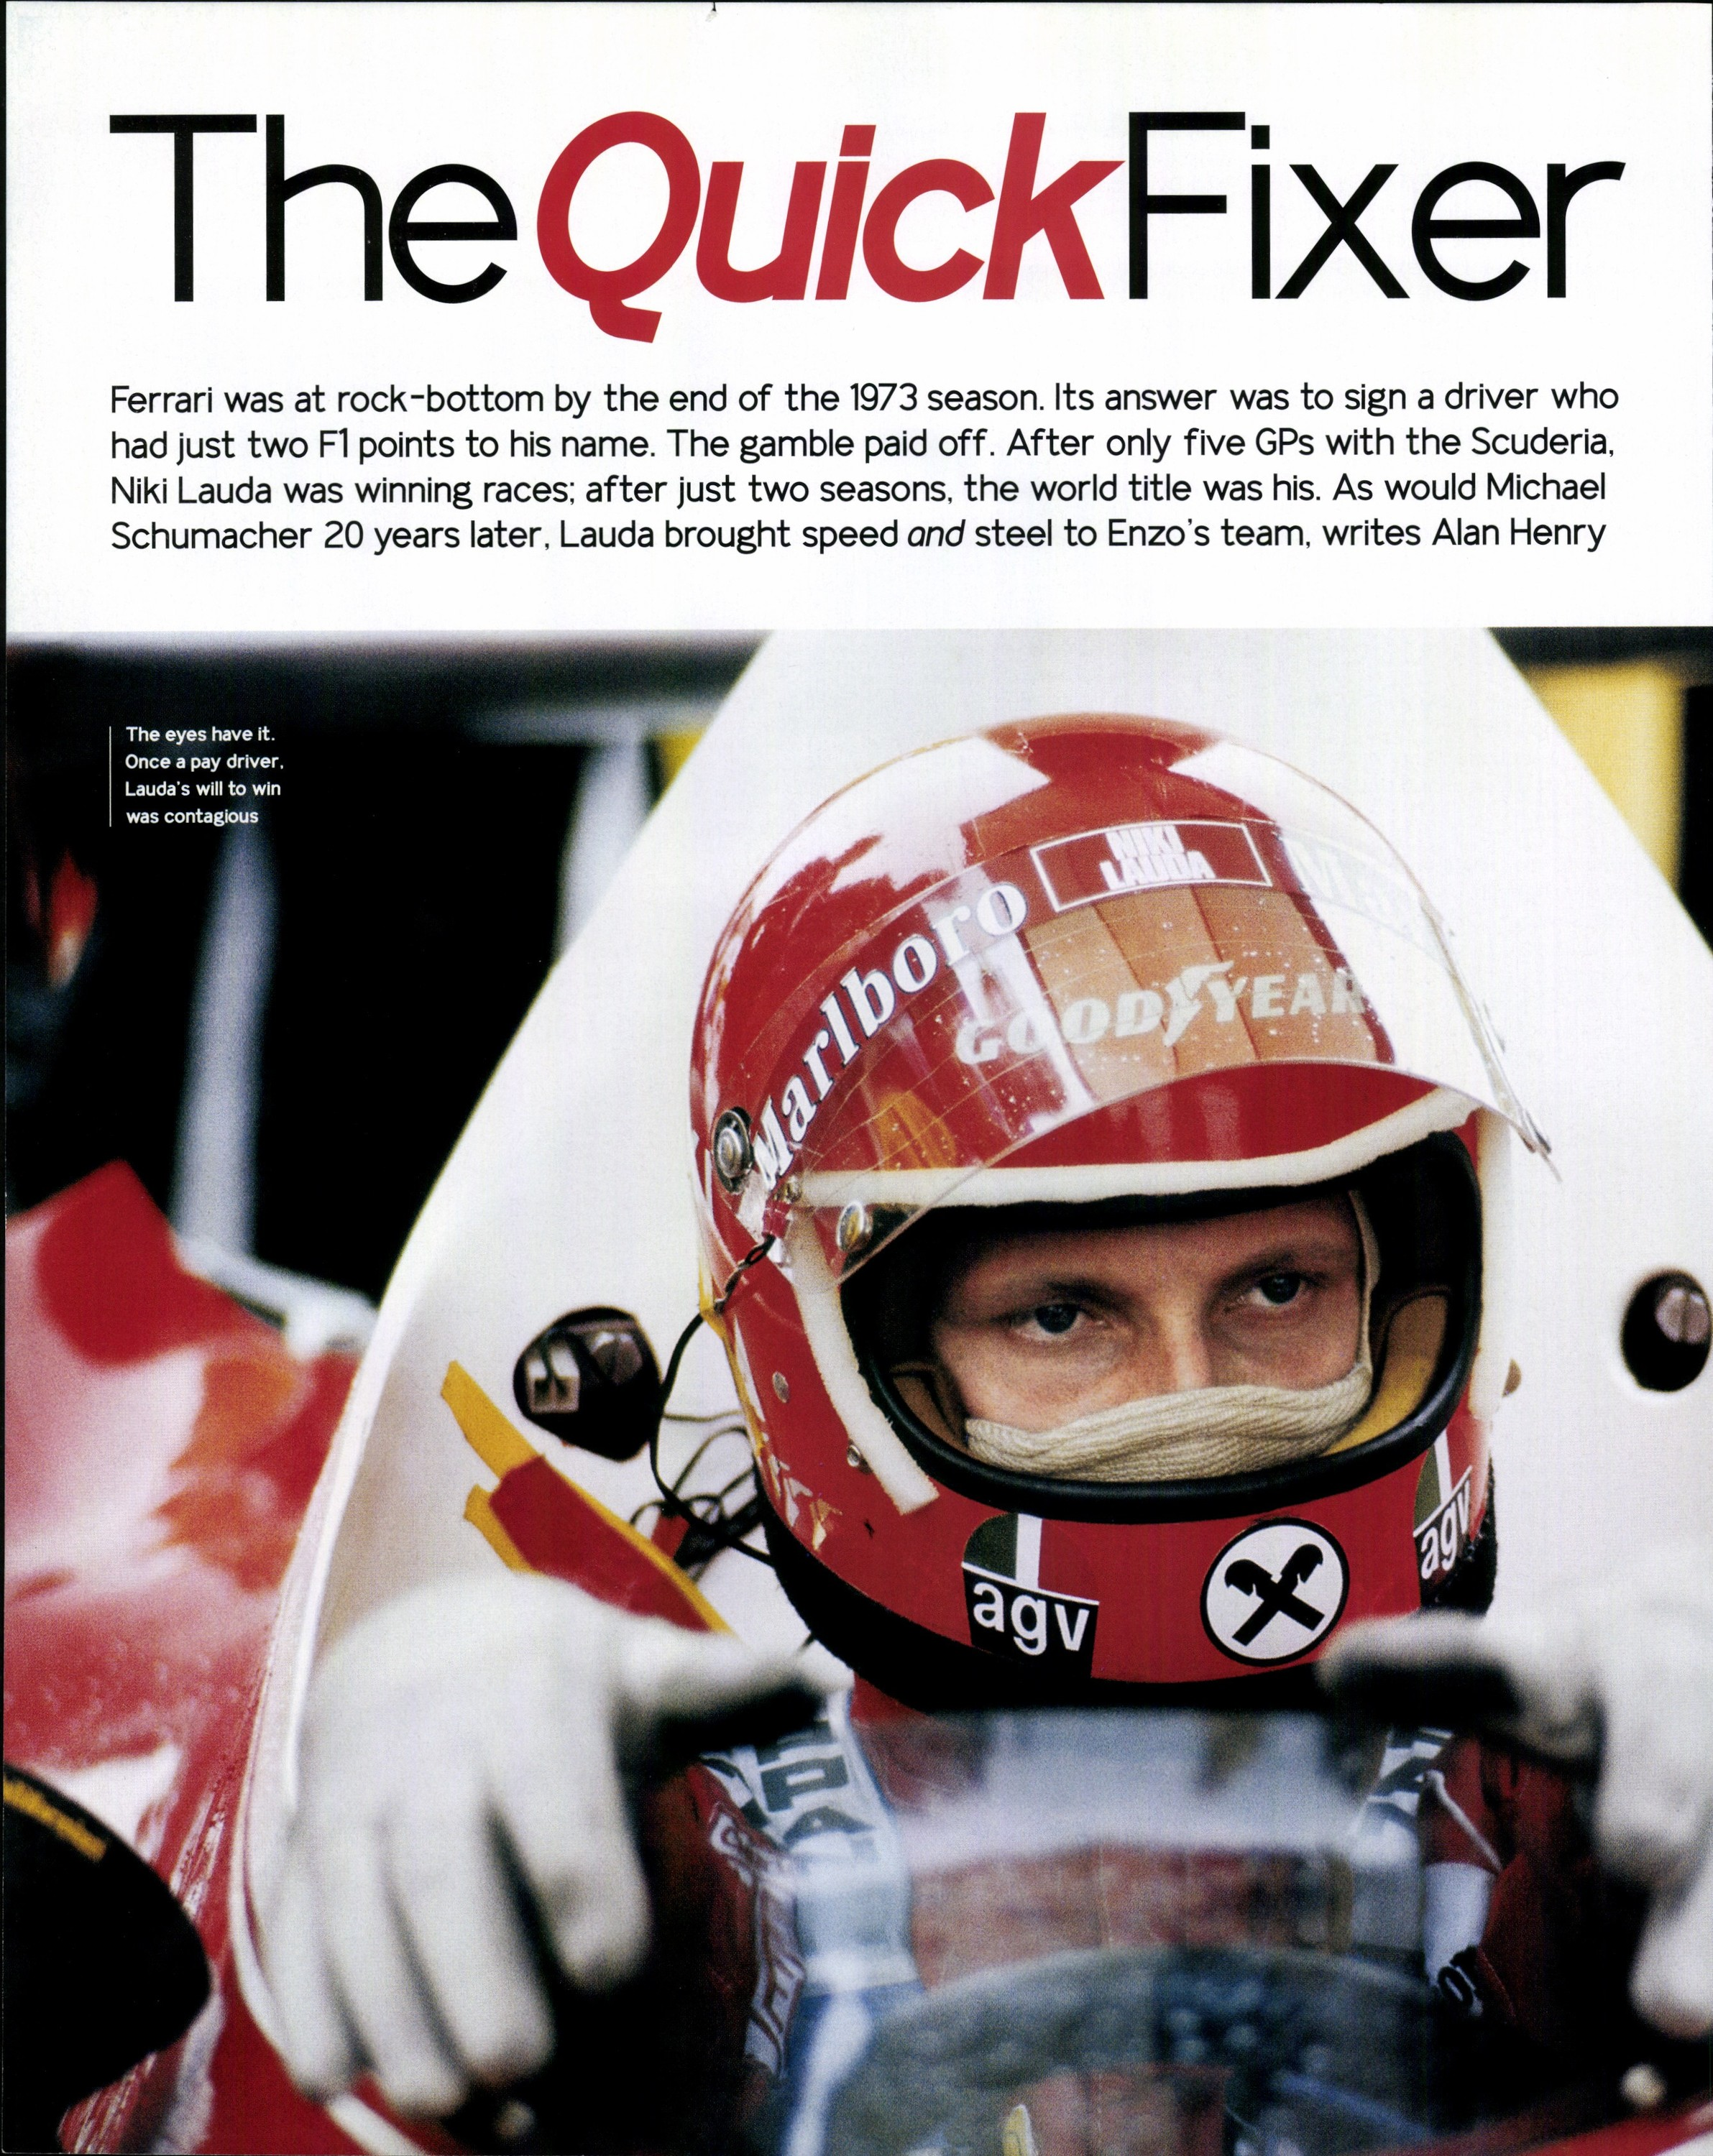 the quickfixer niki lauda image